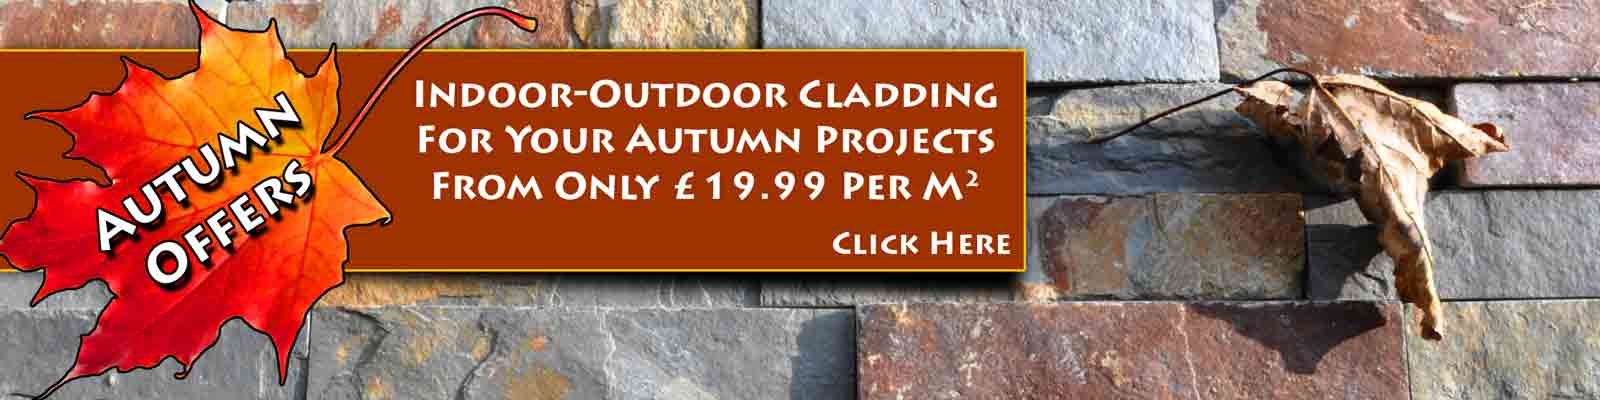 Rock Panel - Ochre - November Cladding Offers